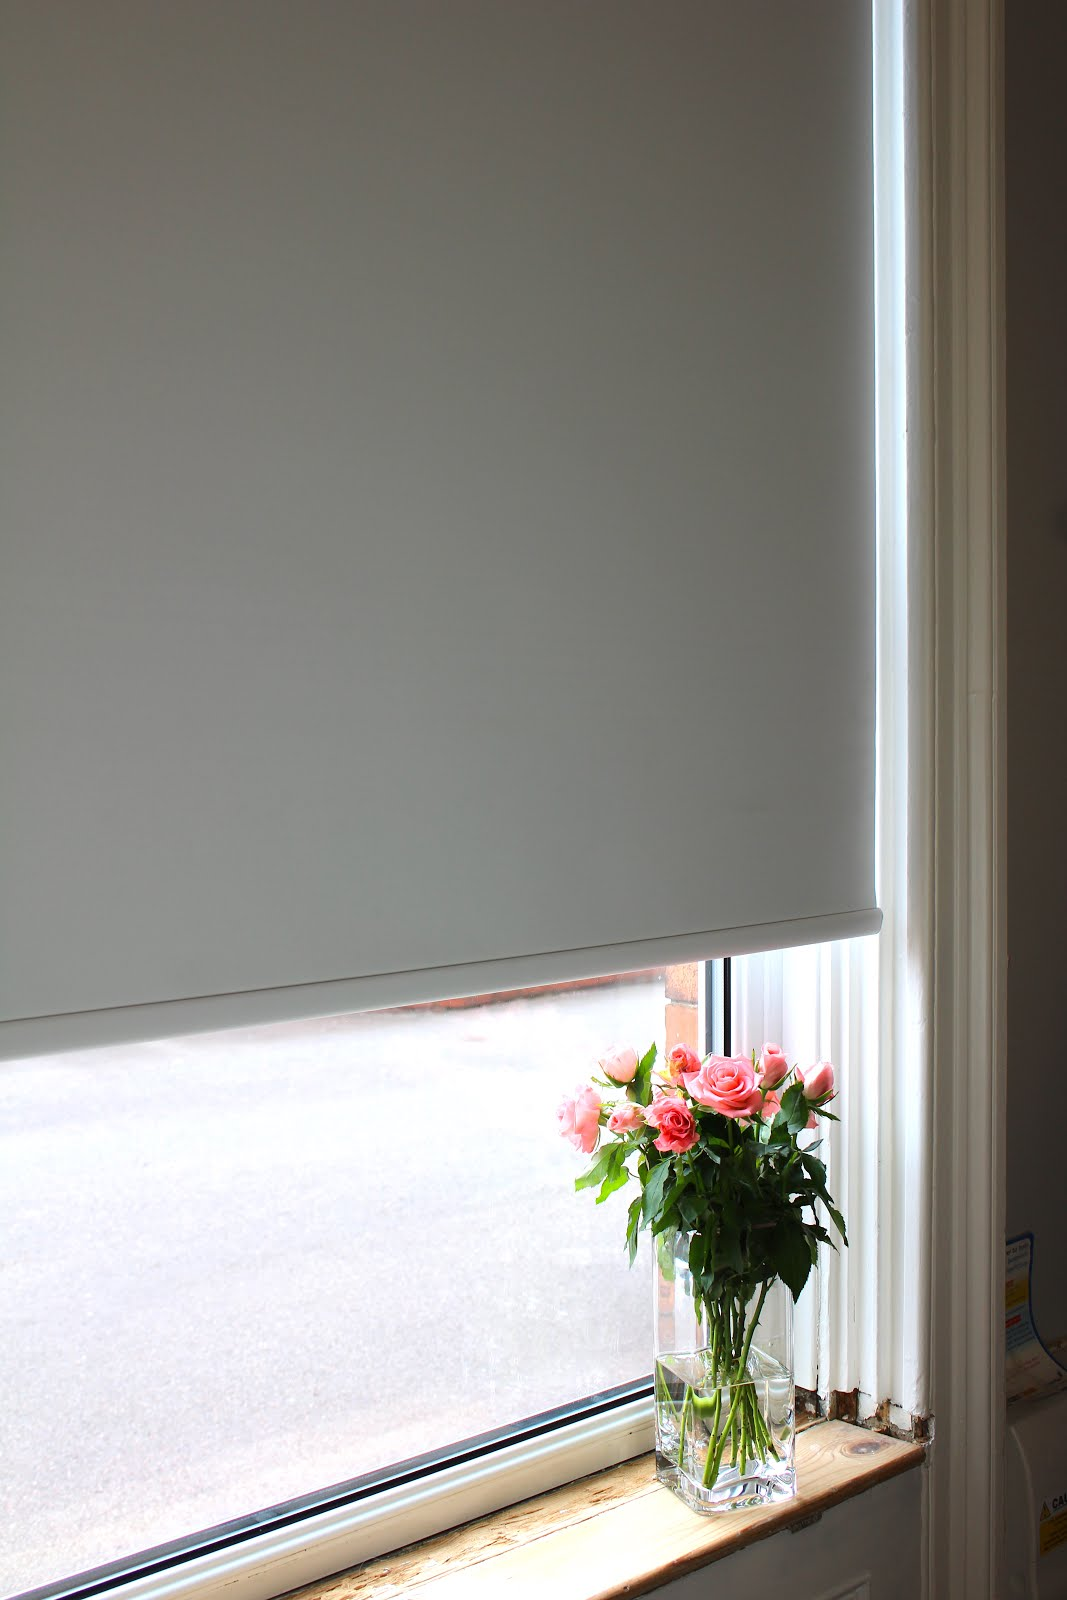 Electric Roller Blind in Living Room